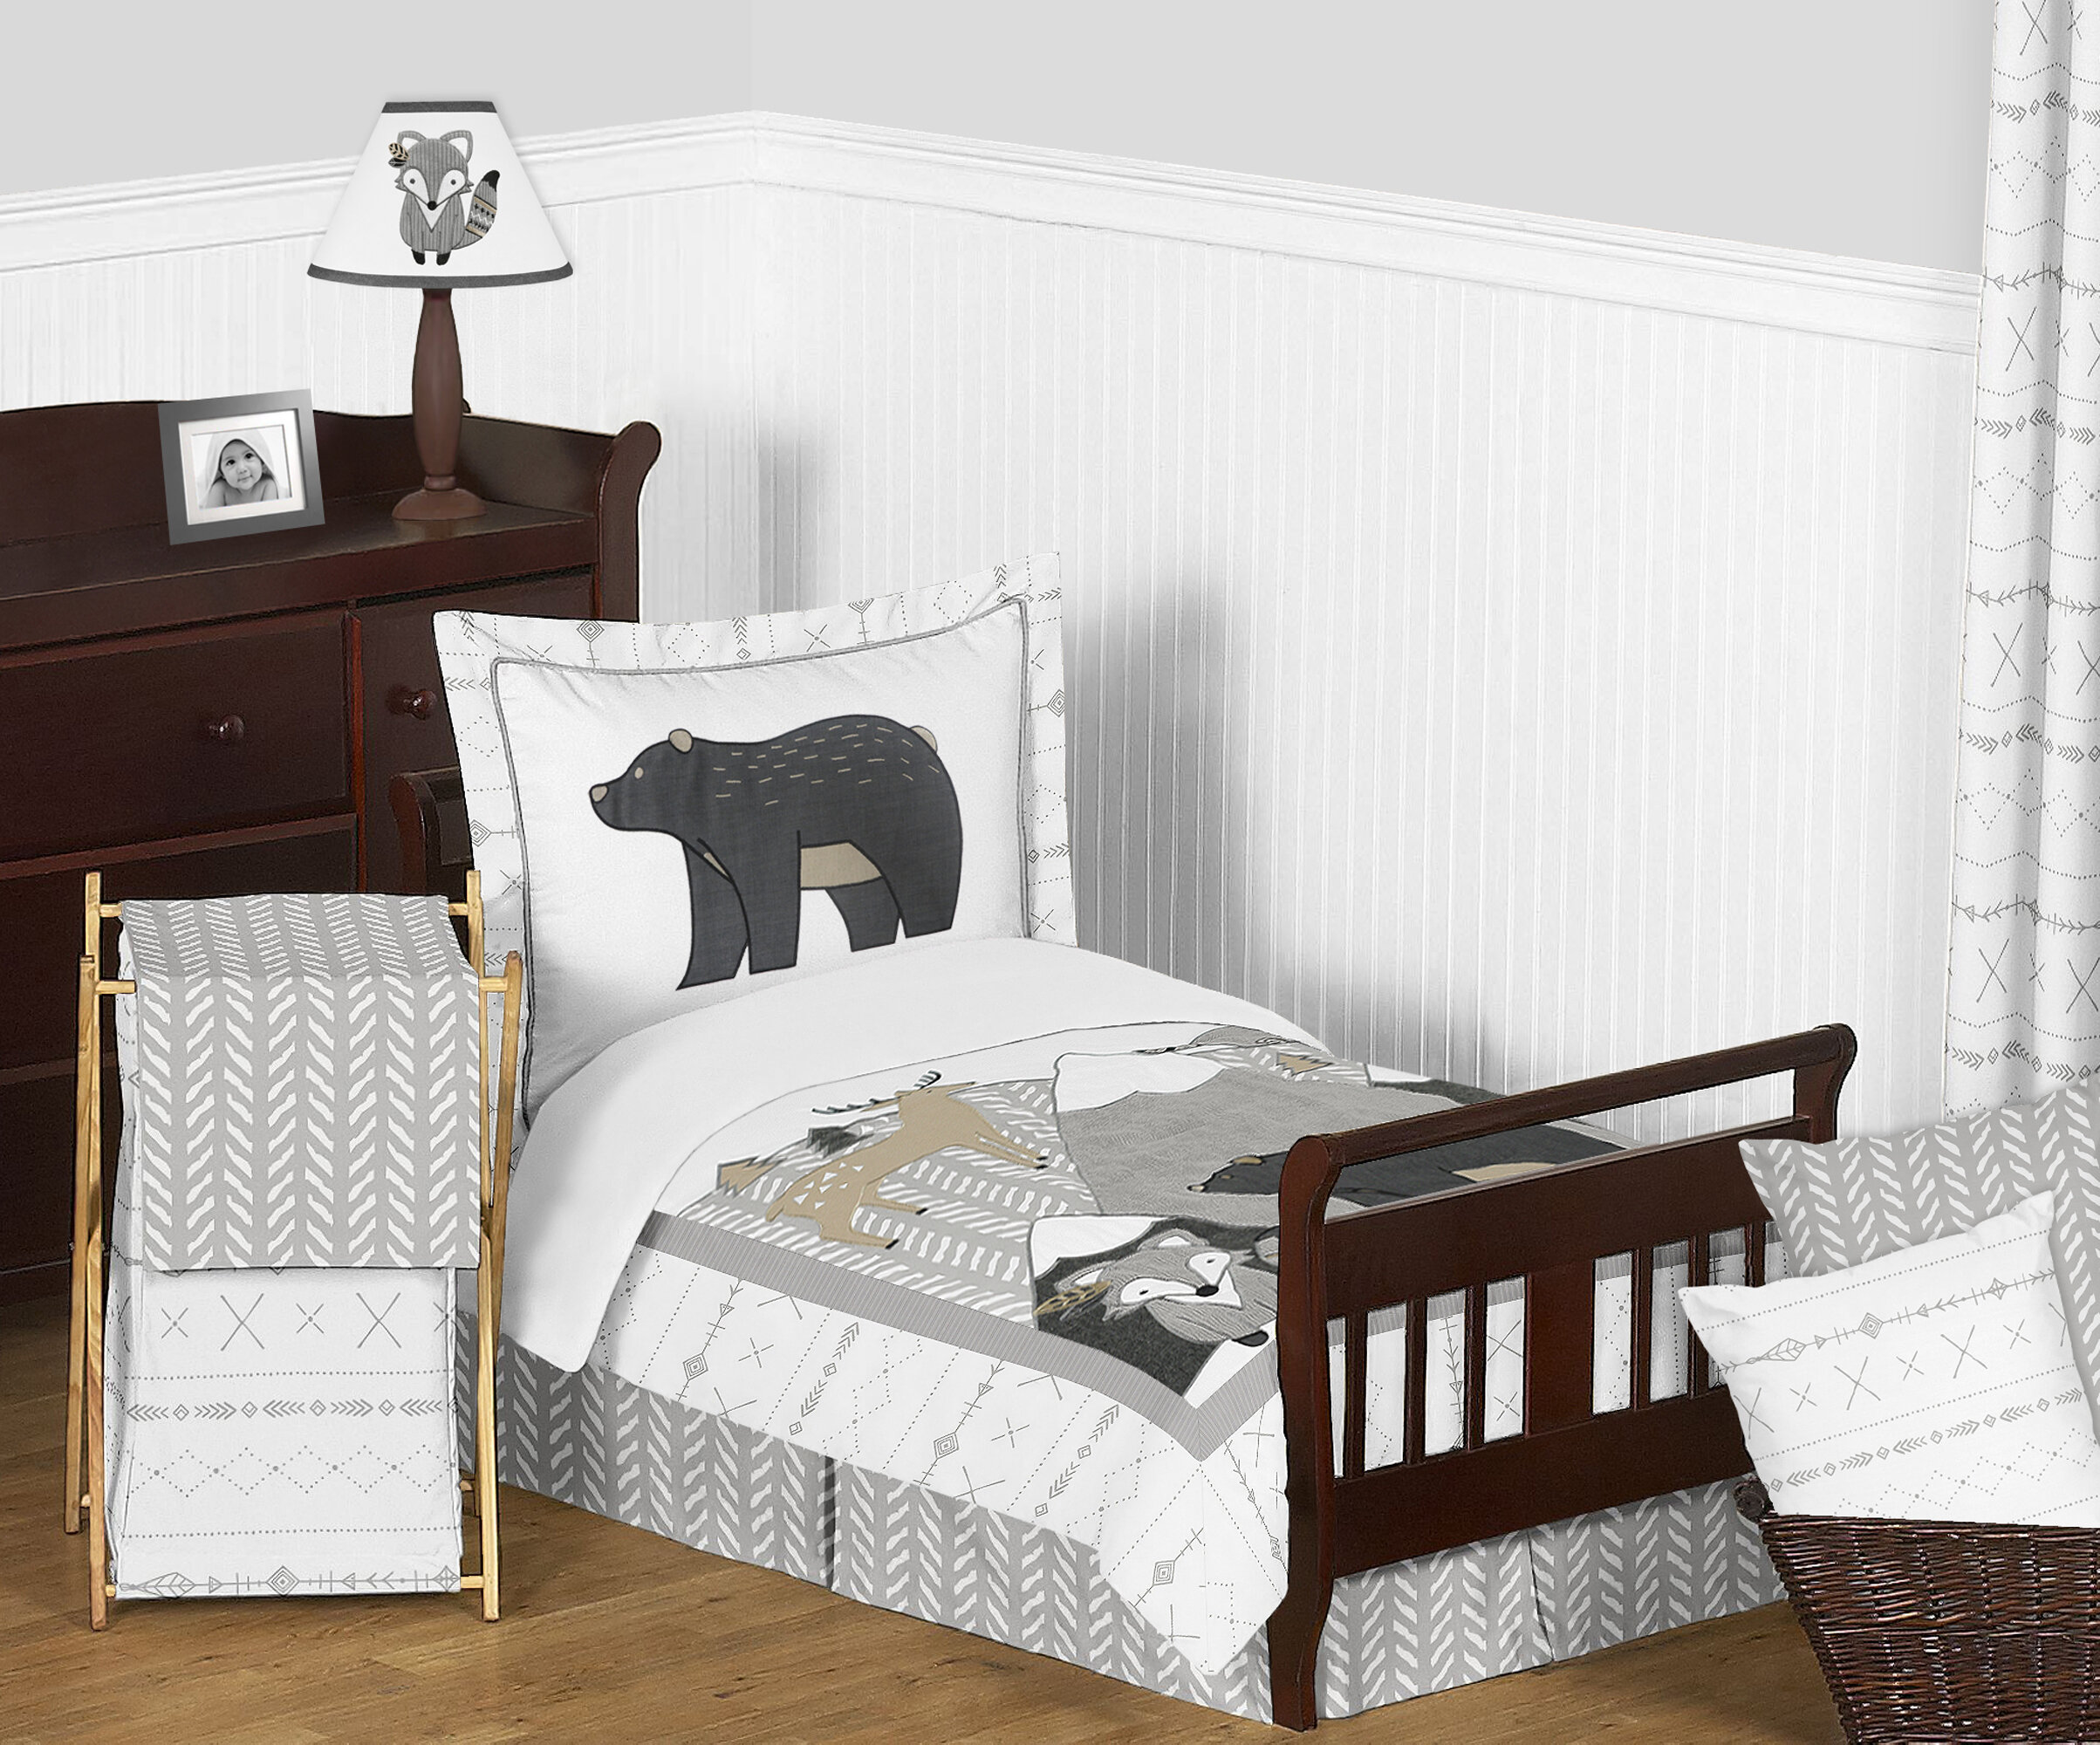 The Best Toddler Bedding From Sheets To Quilts Comforters Parenting